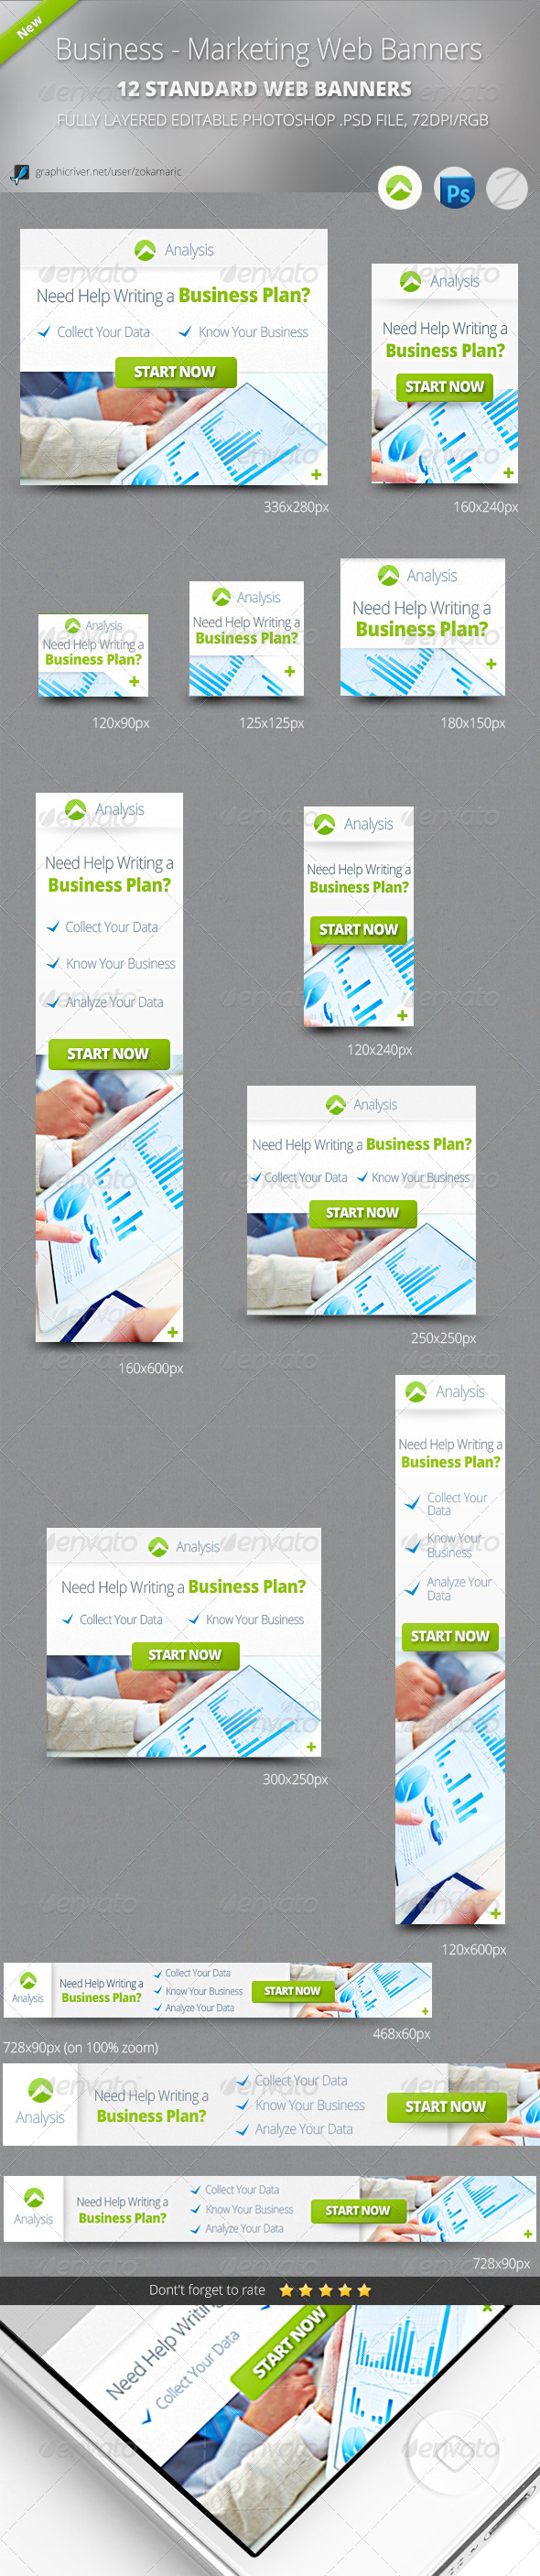 GraphicRiver Business Marketing Web Banners 5115986